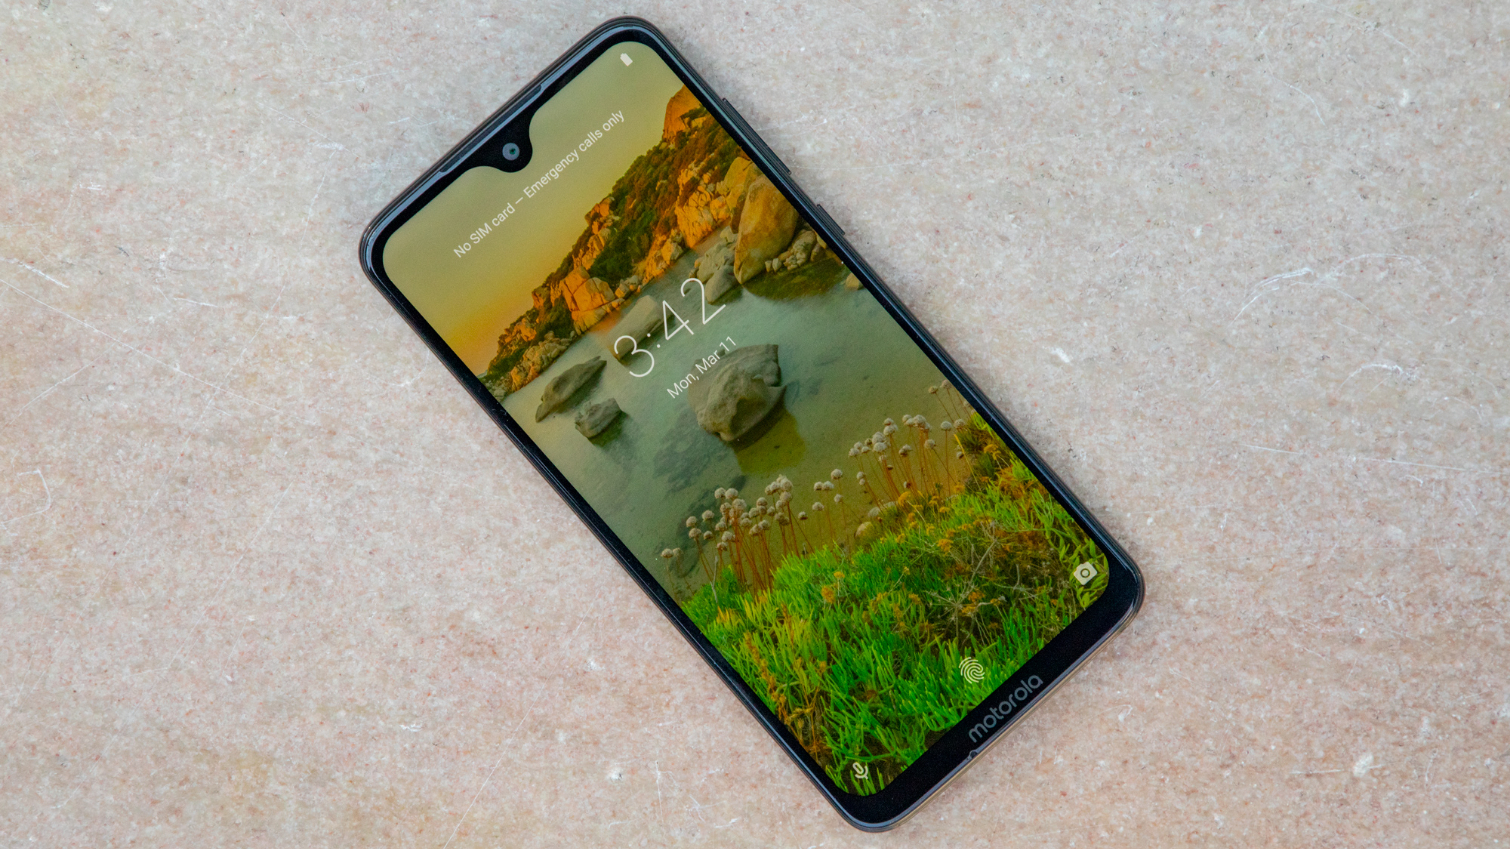 Moto G7 Review: Still the Budget Phone Champ | Tom's Guide